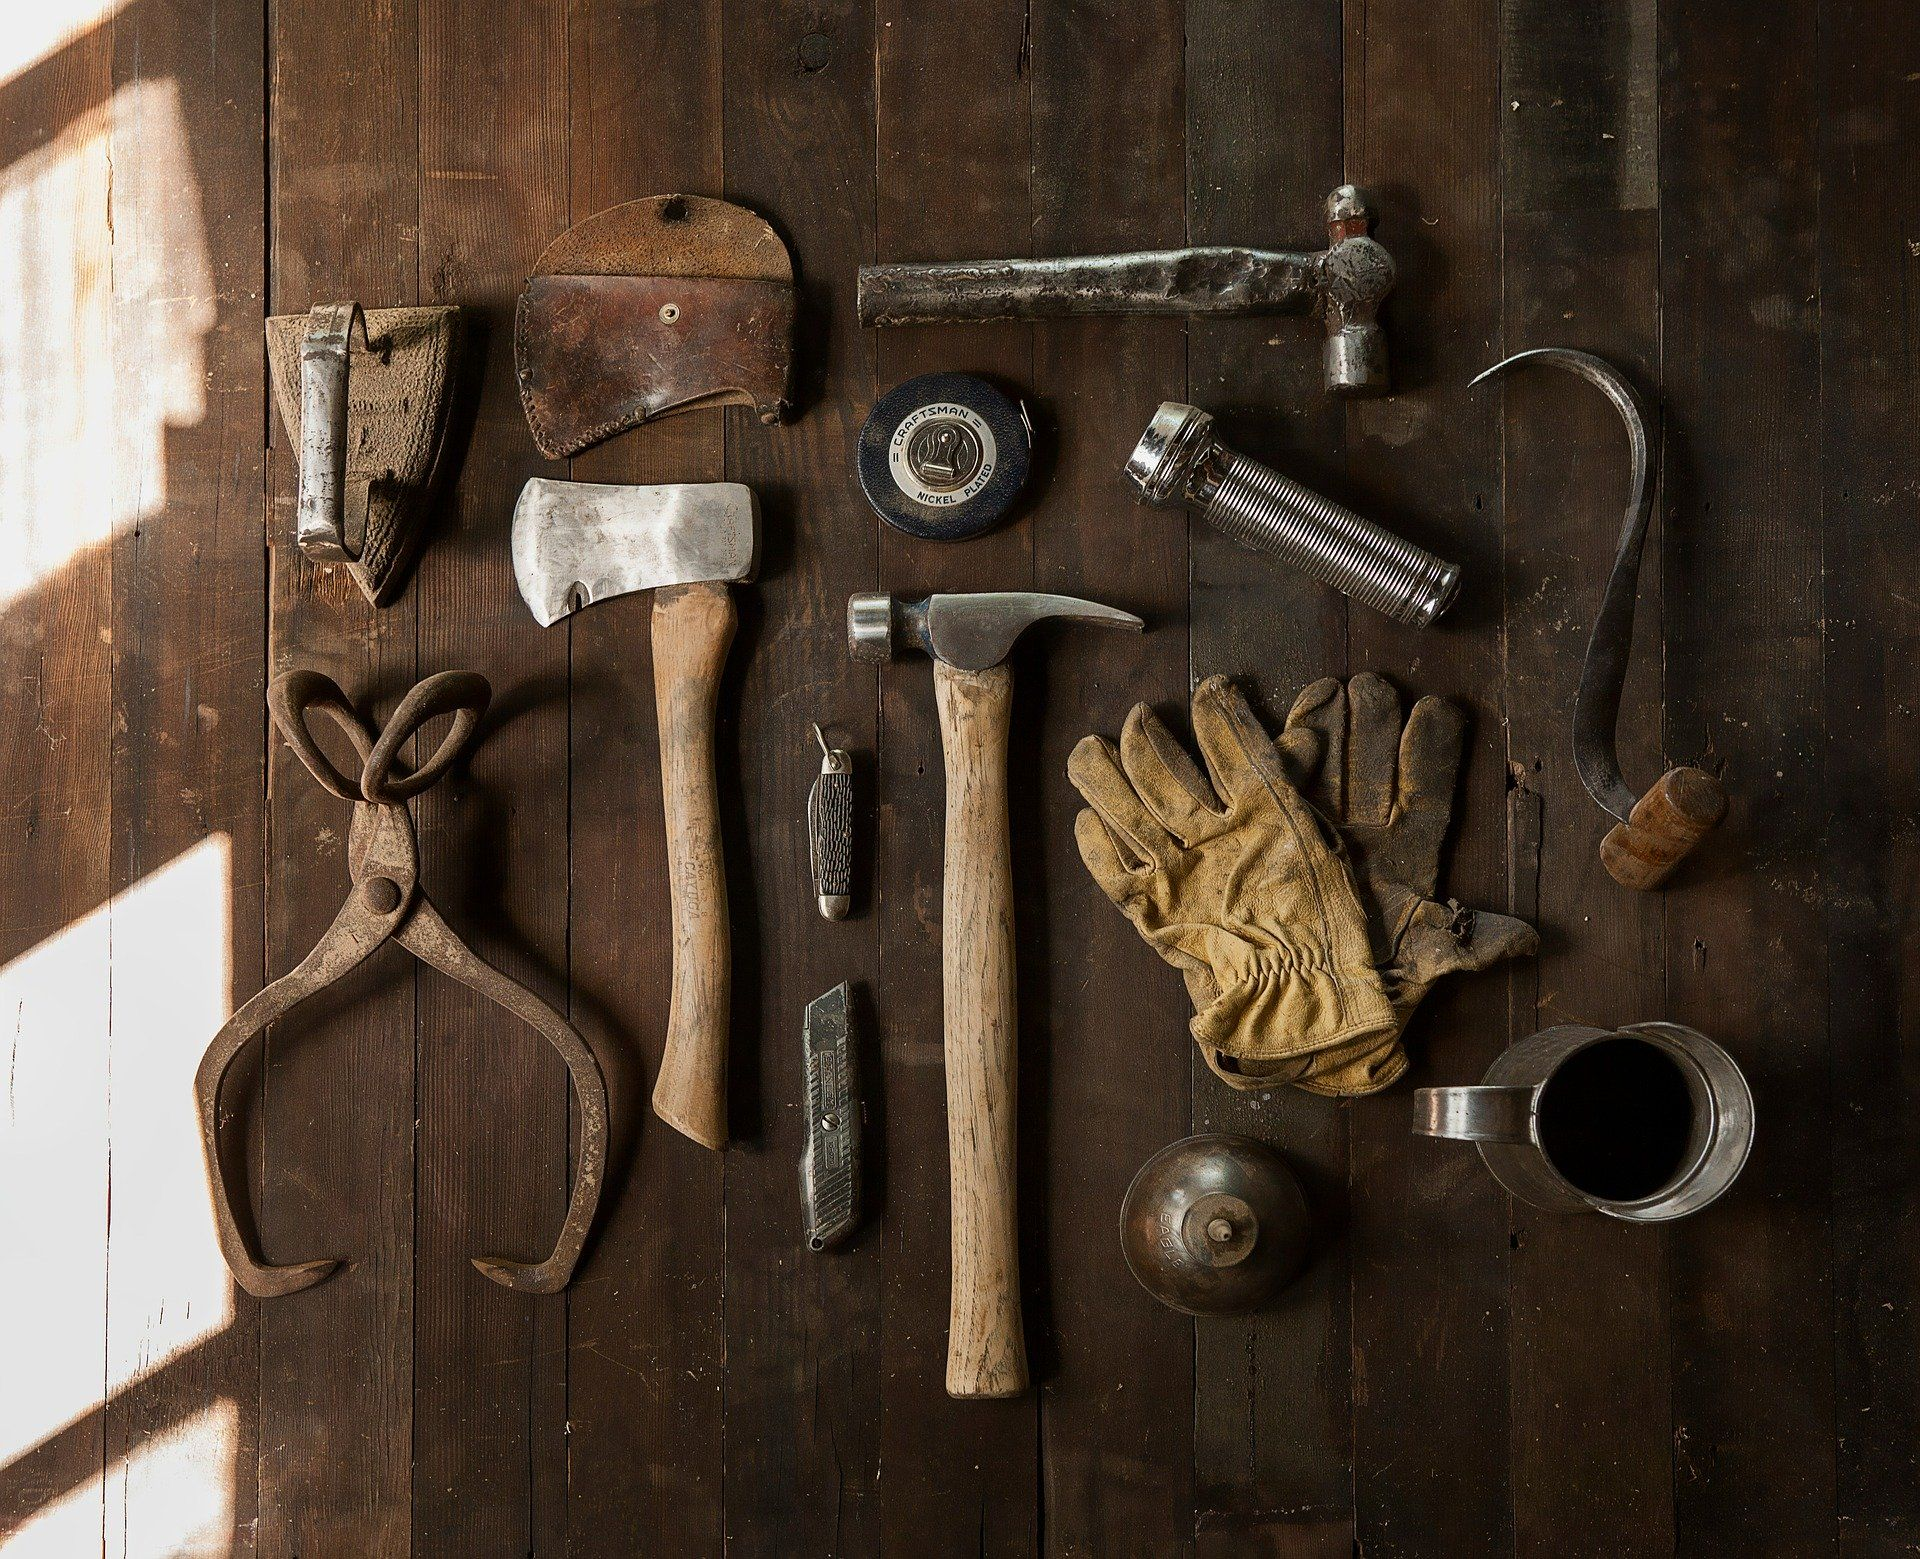 Tools on a wooden floor